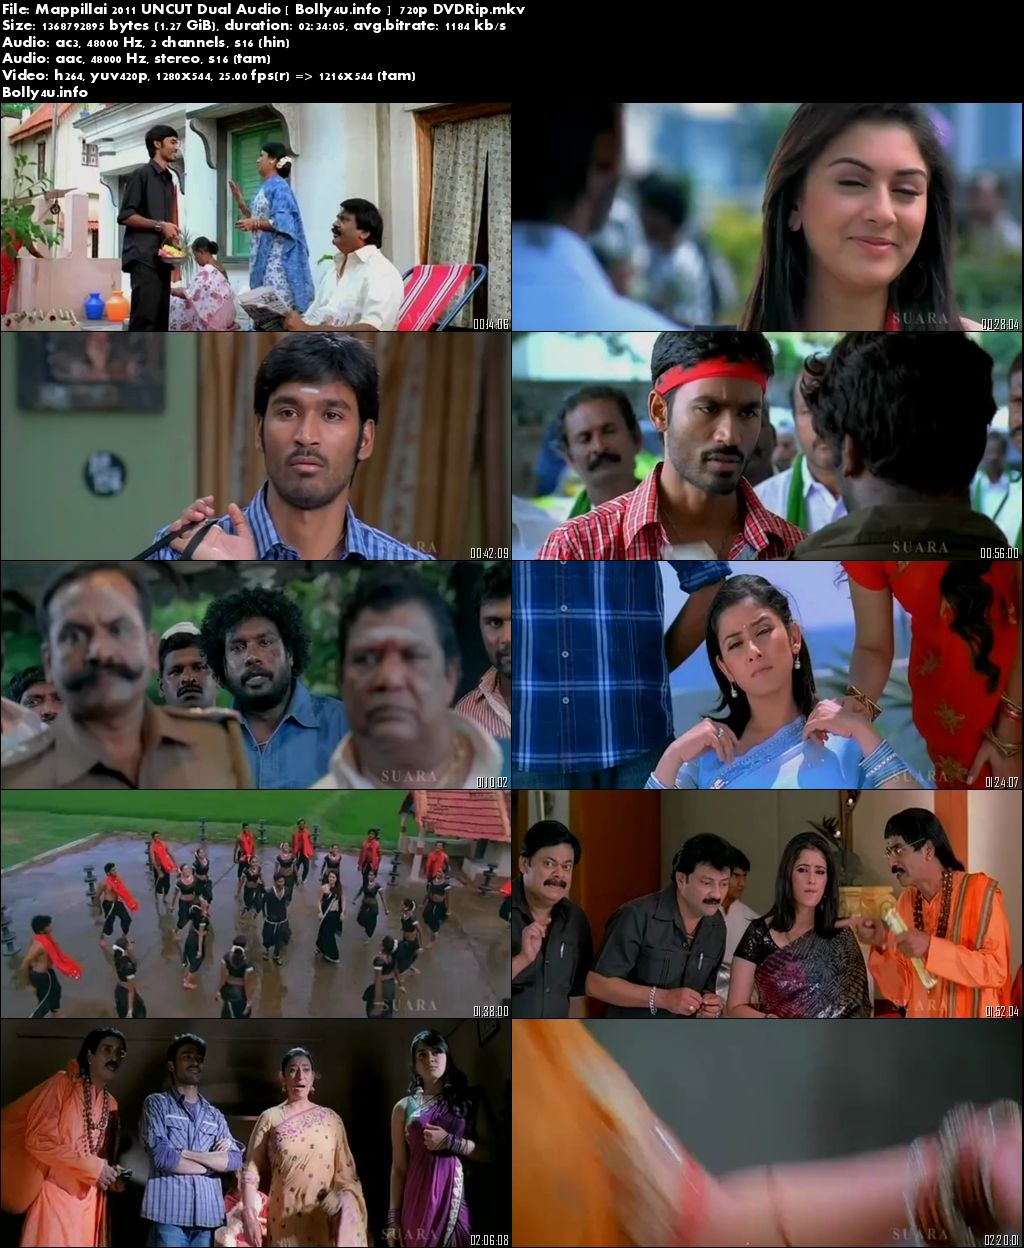 Screen Shoots of Mappillai 2011 DVDRip Download 1.3GB Hindi UNCUT Dual Audio 720p